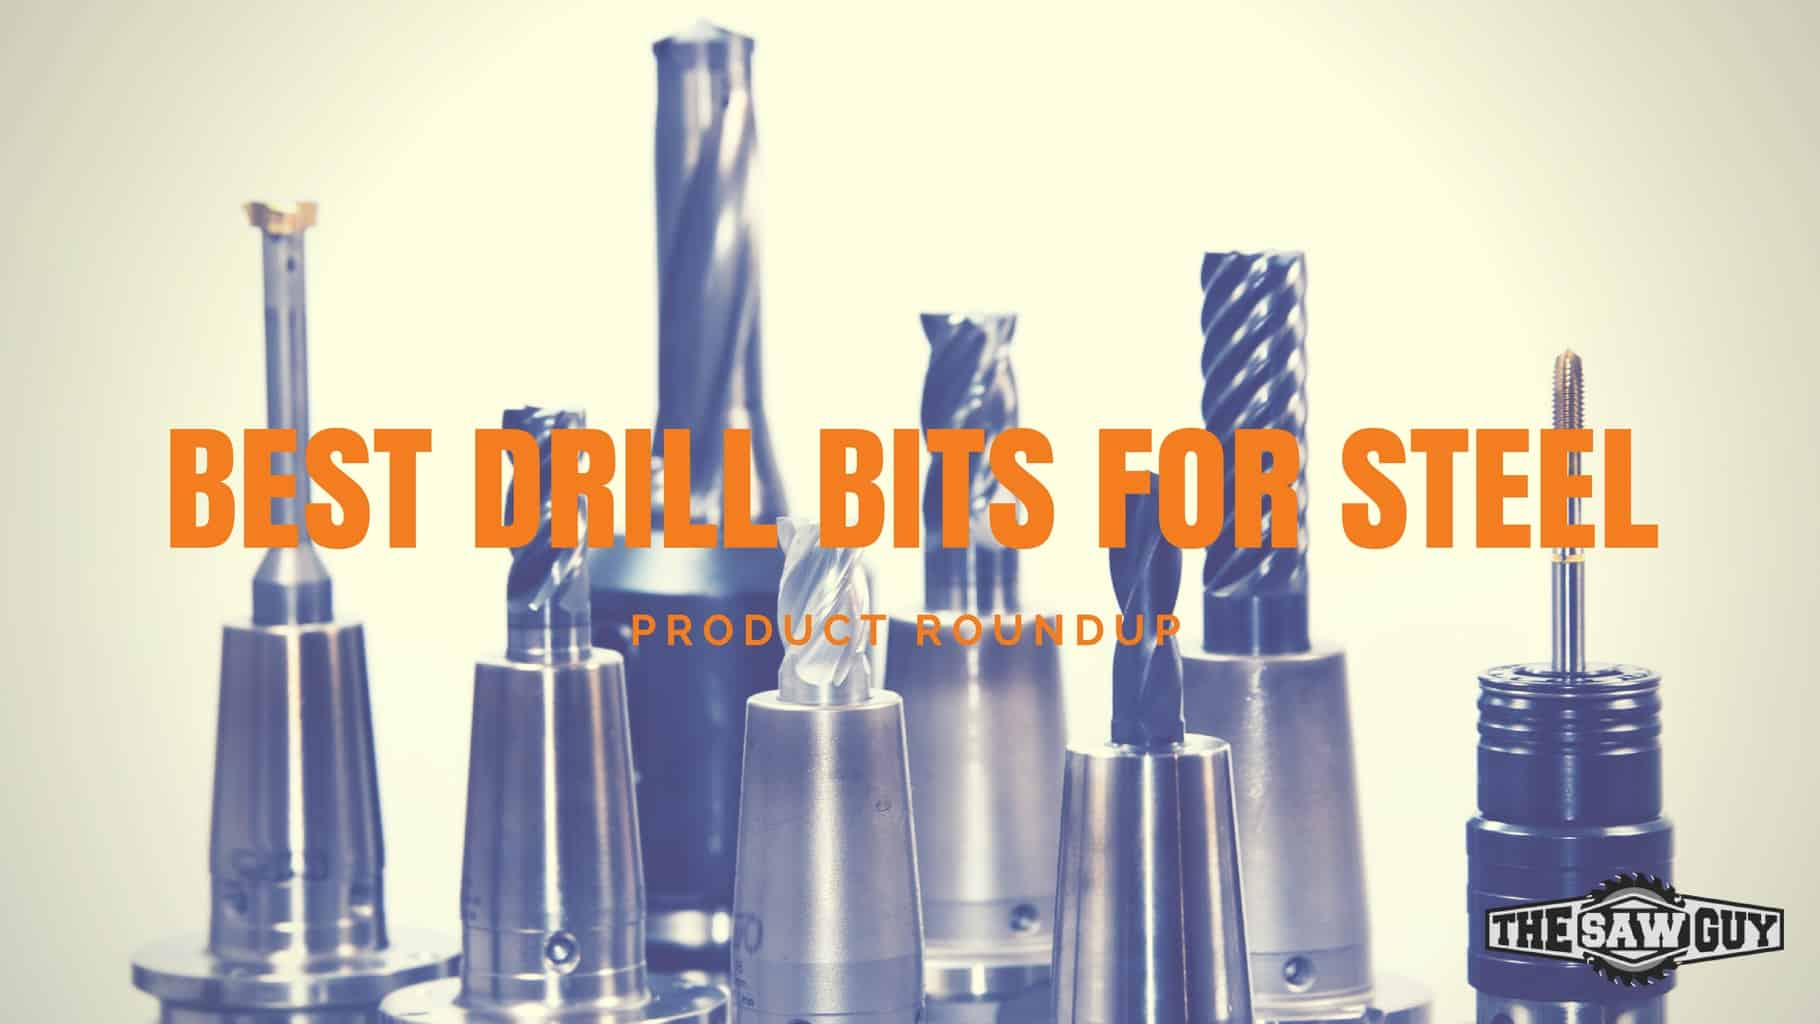 9478b66d828 The Best Drill Bits for Steel 2019 - Comparisons   Reviews